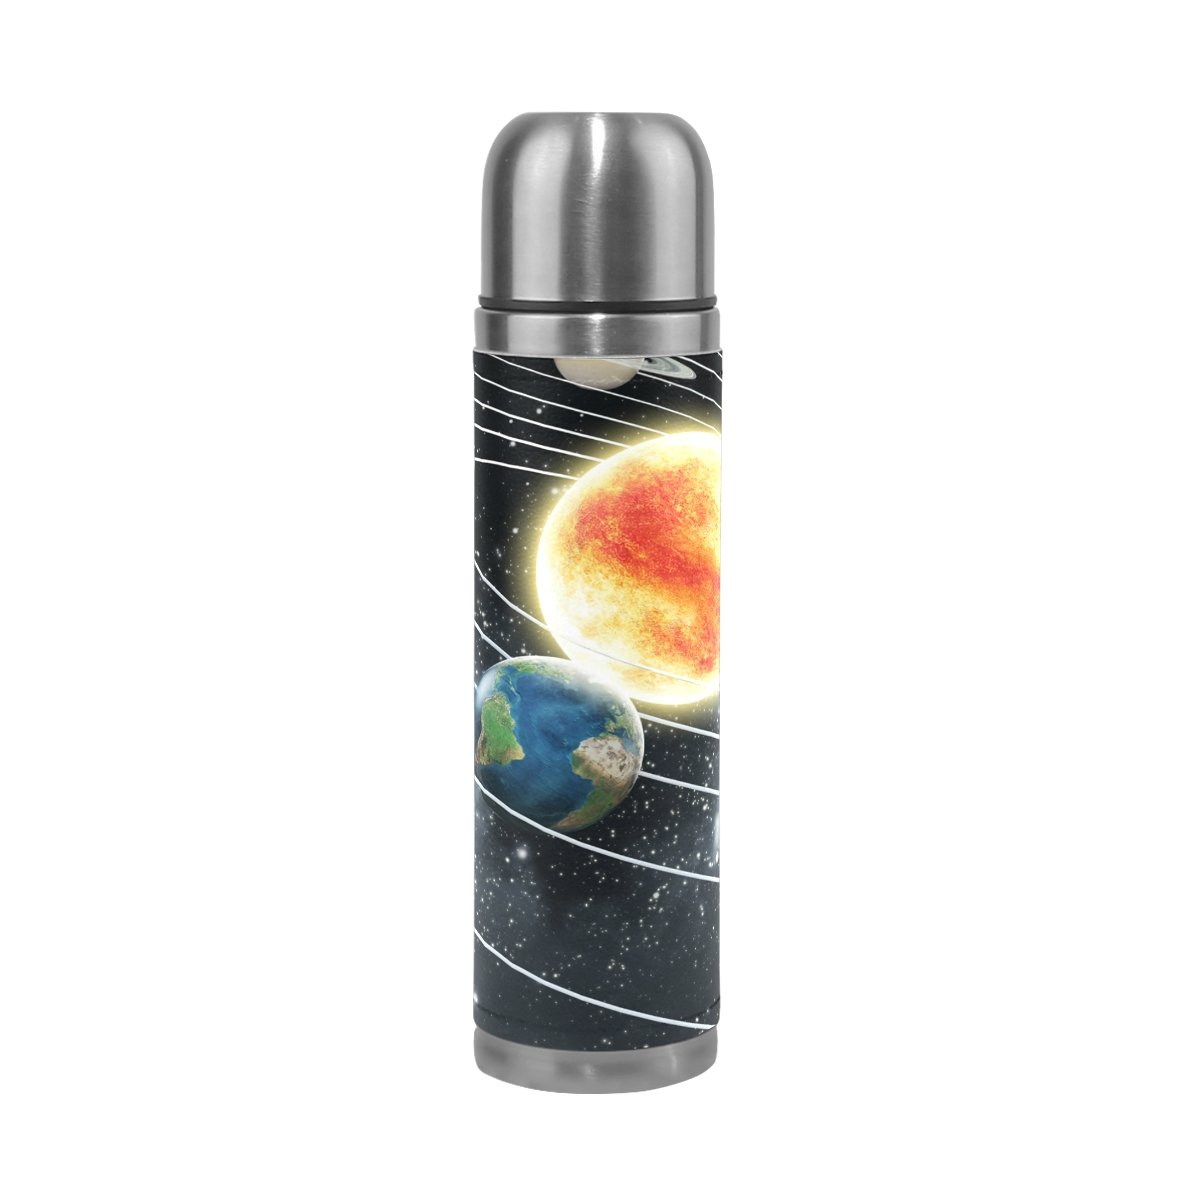 LORVIES Educational Solar System Stainless Steel Thermos Water Bottle Vacuum Insulated Cup Leak Proof Double Vacuum Bottle, PU Leather Travel Thermal Mug,17 oz